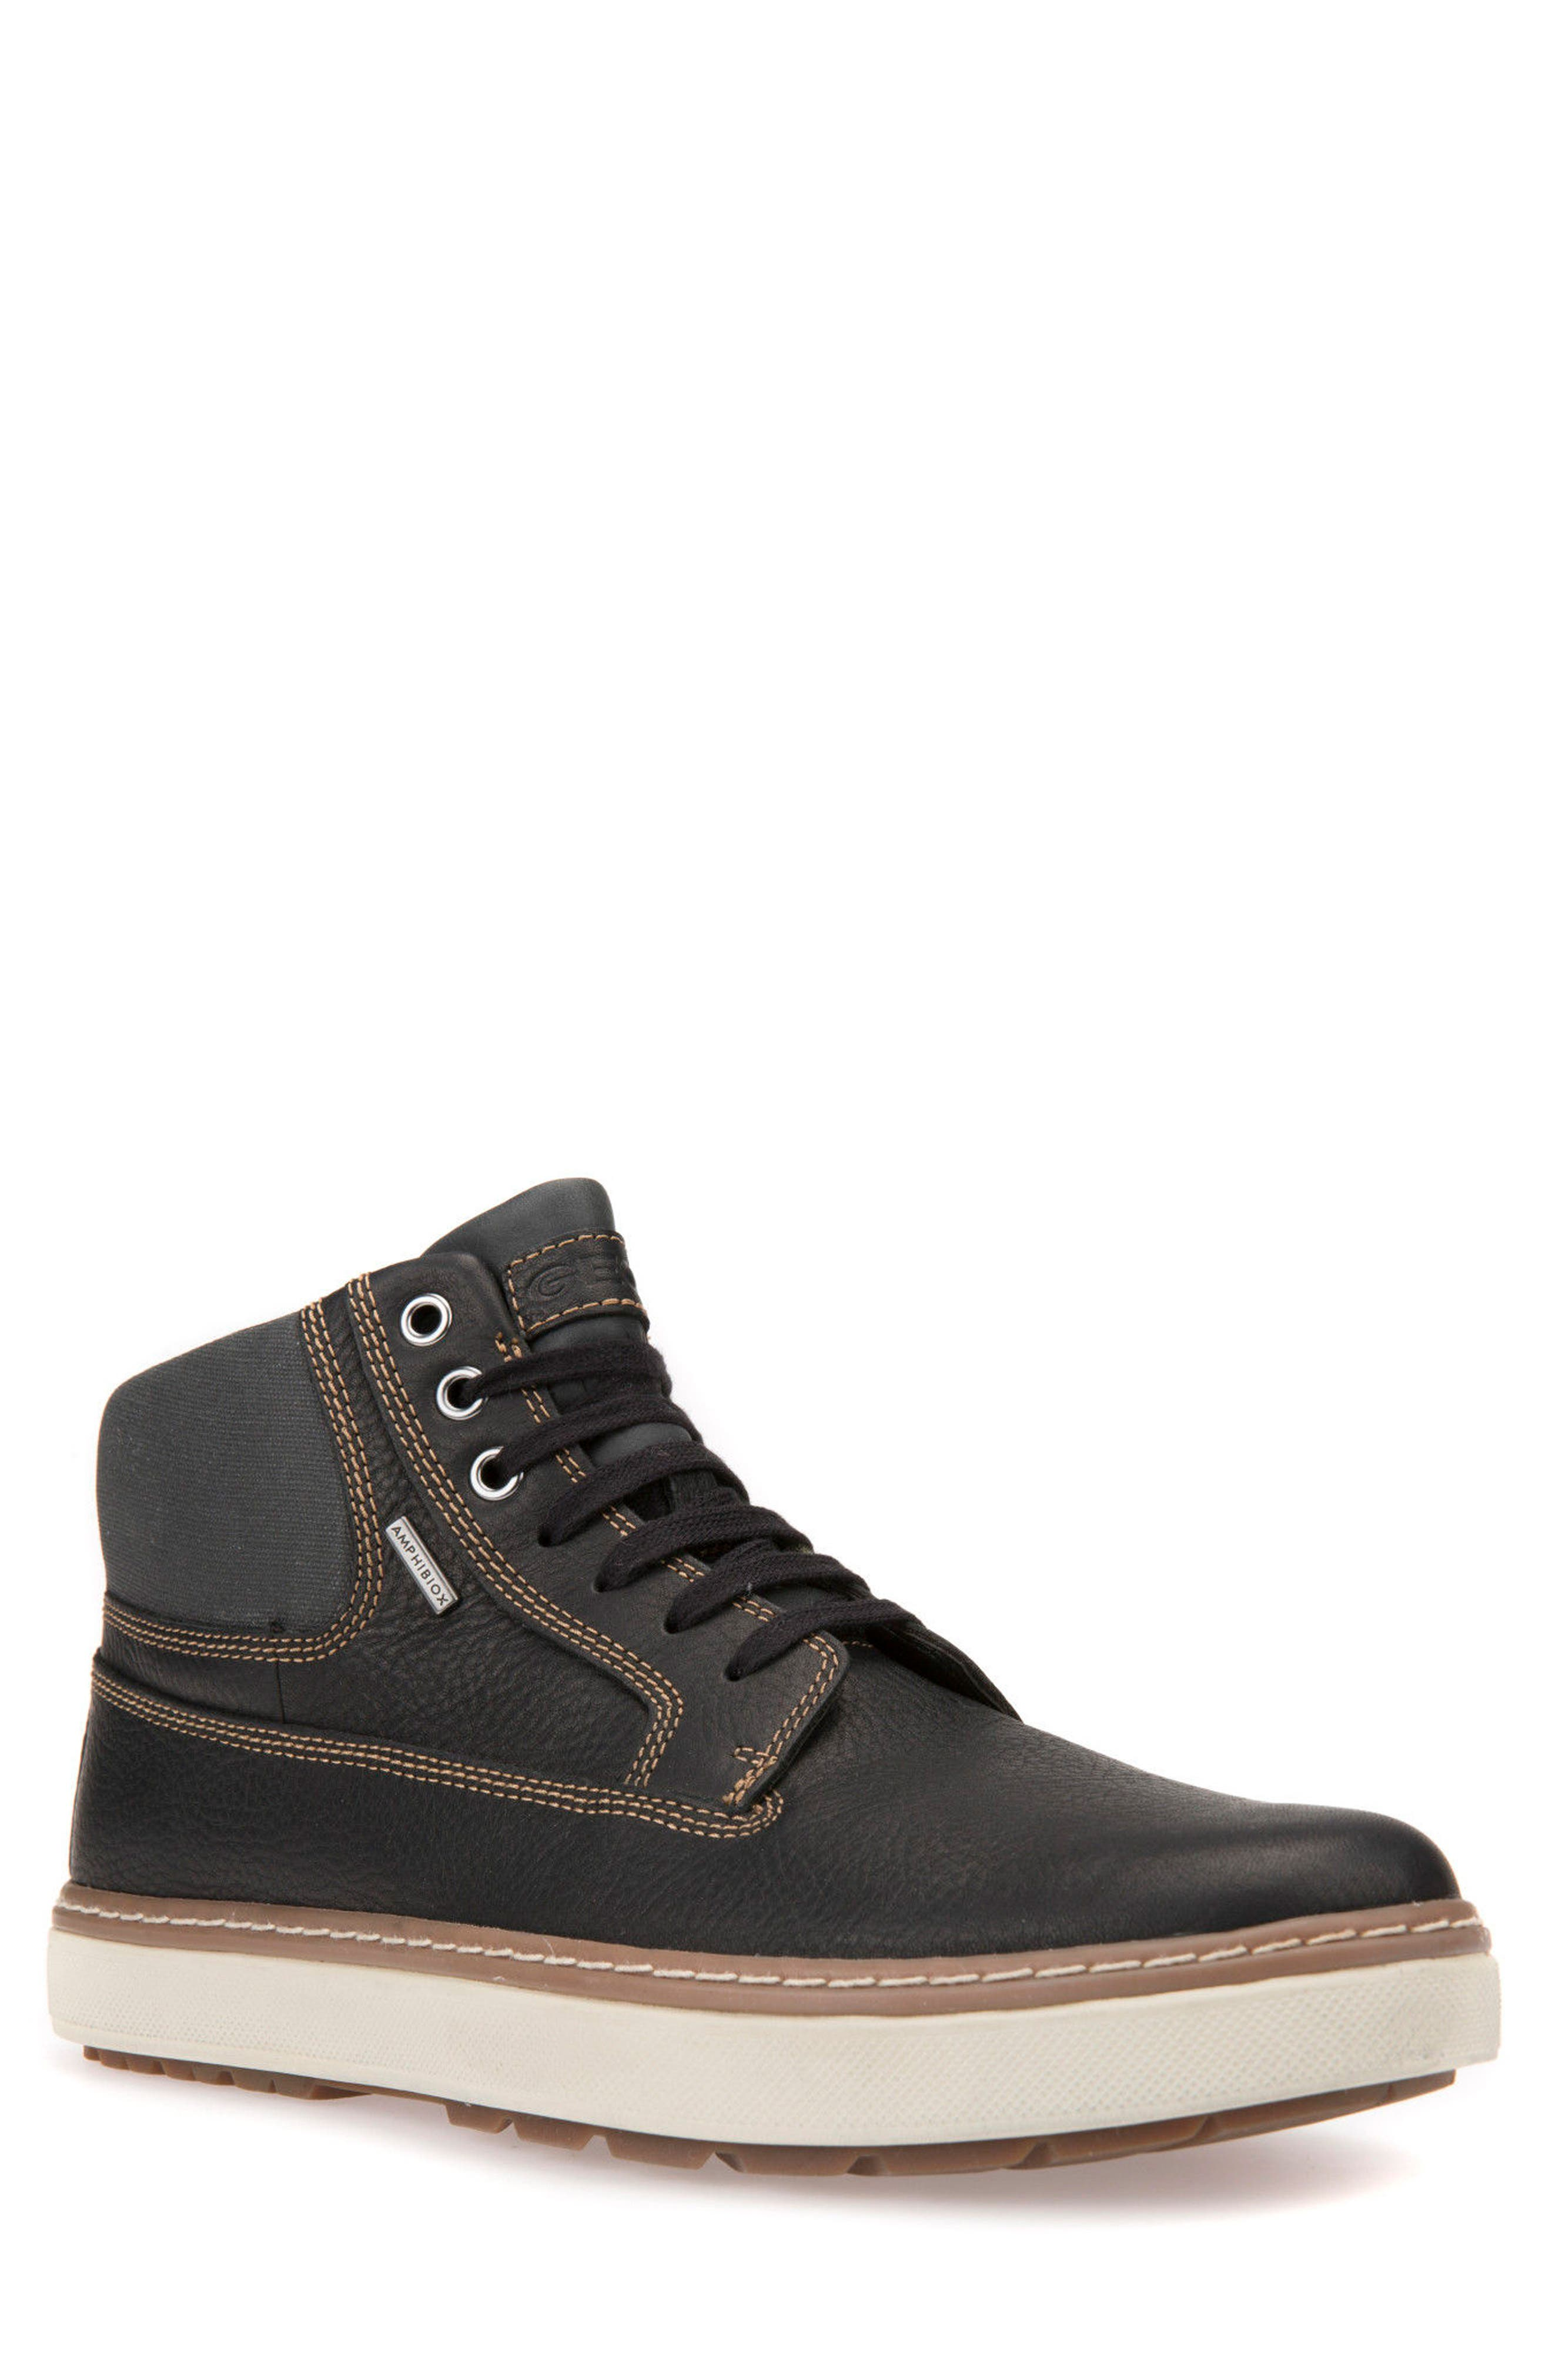 Main Image - Geox Mattias B ABX Waterproof Sneaker Boot (Men)